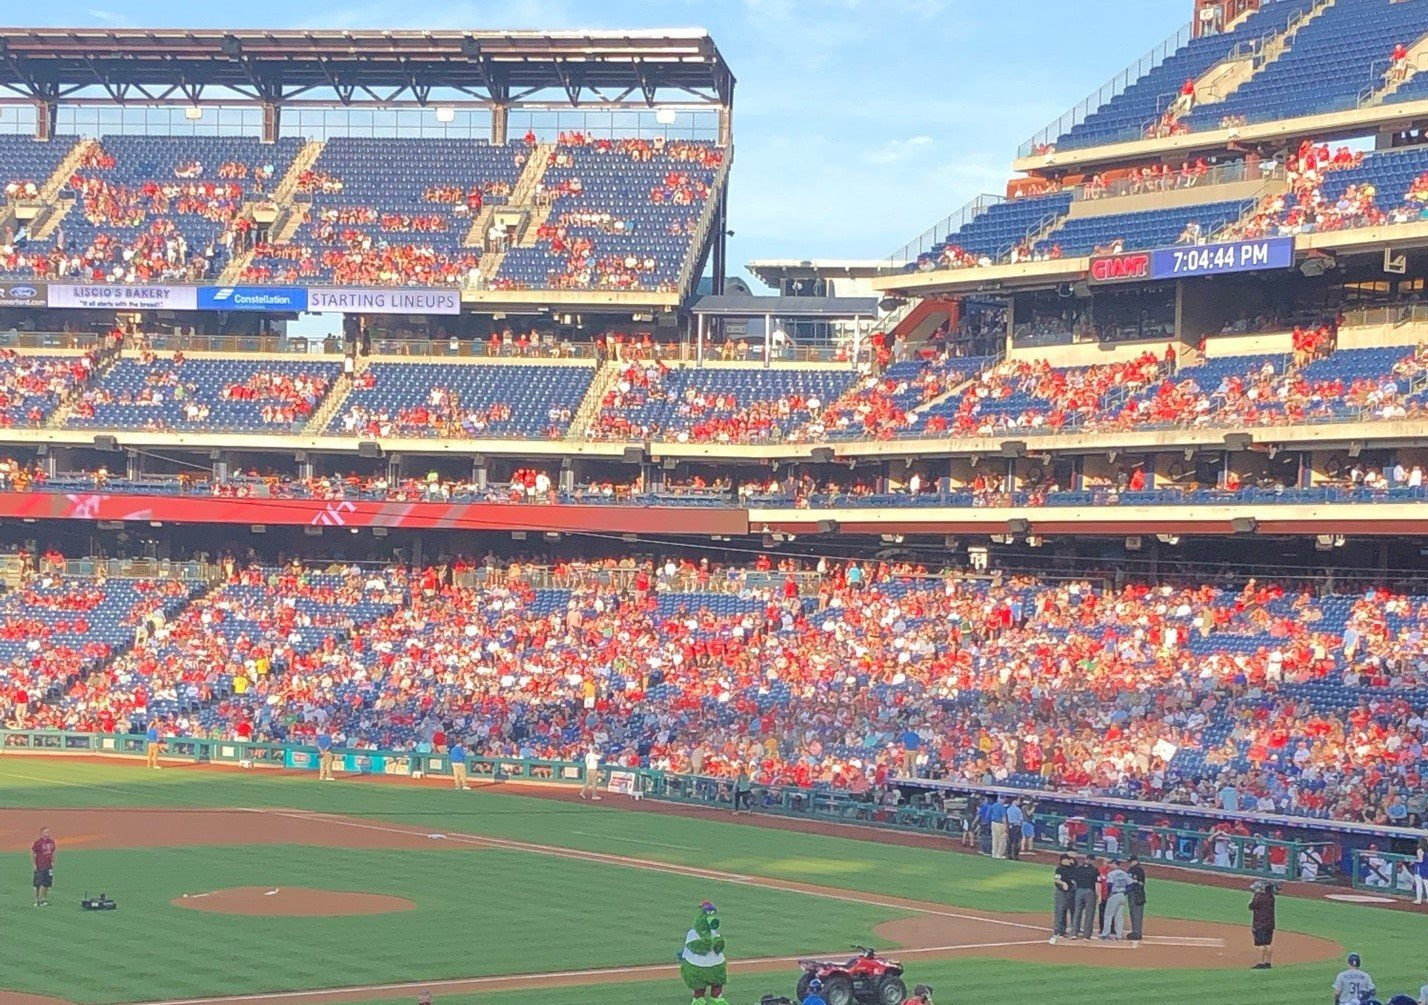 sunny seats at citizens bank park